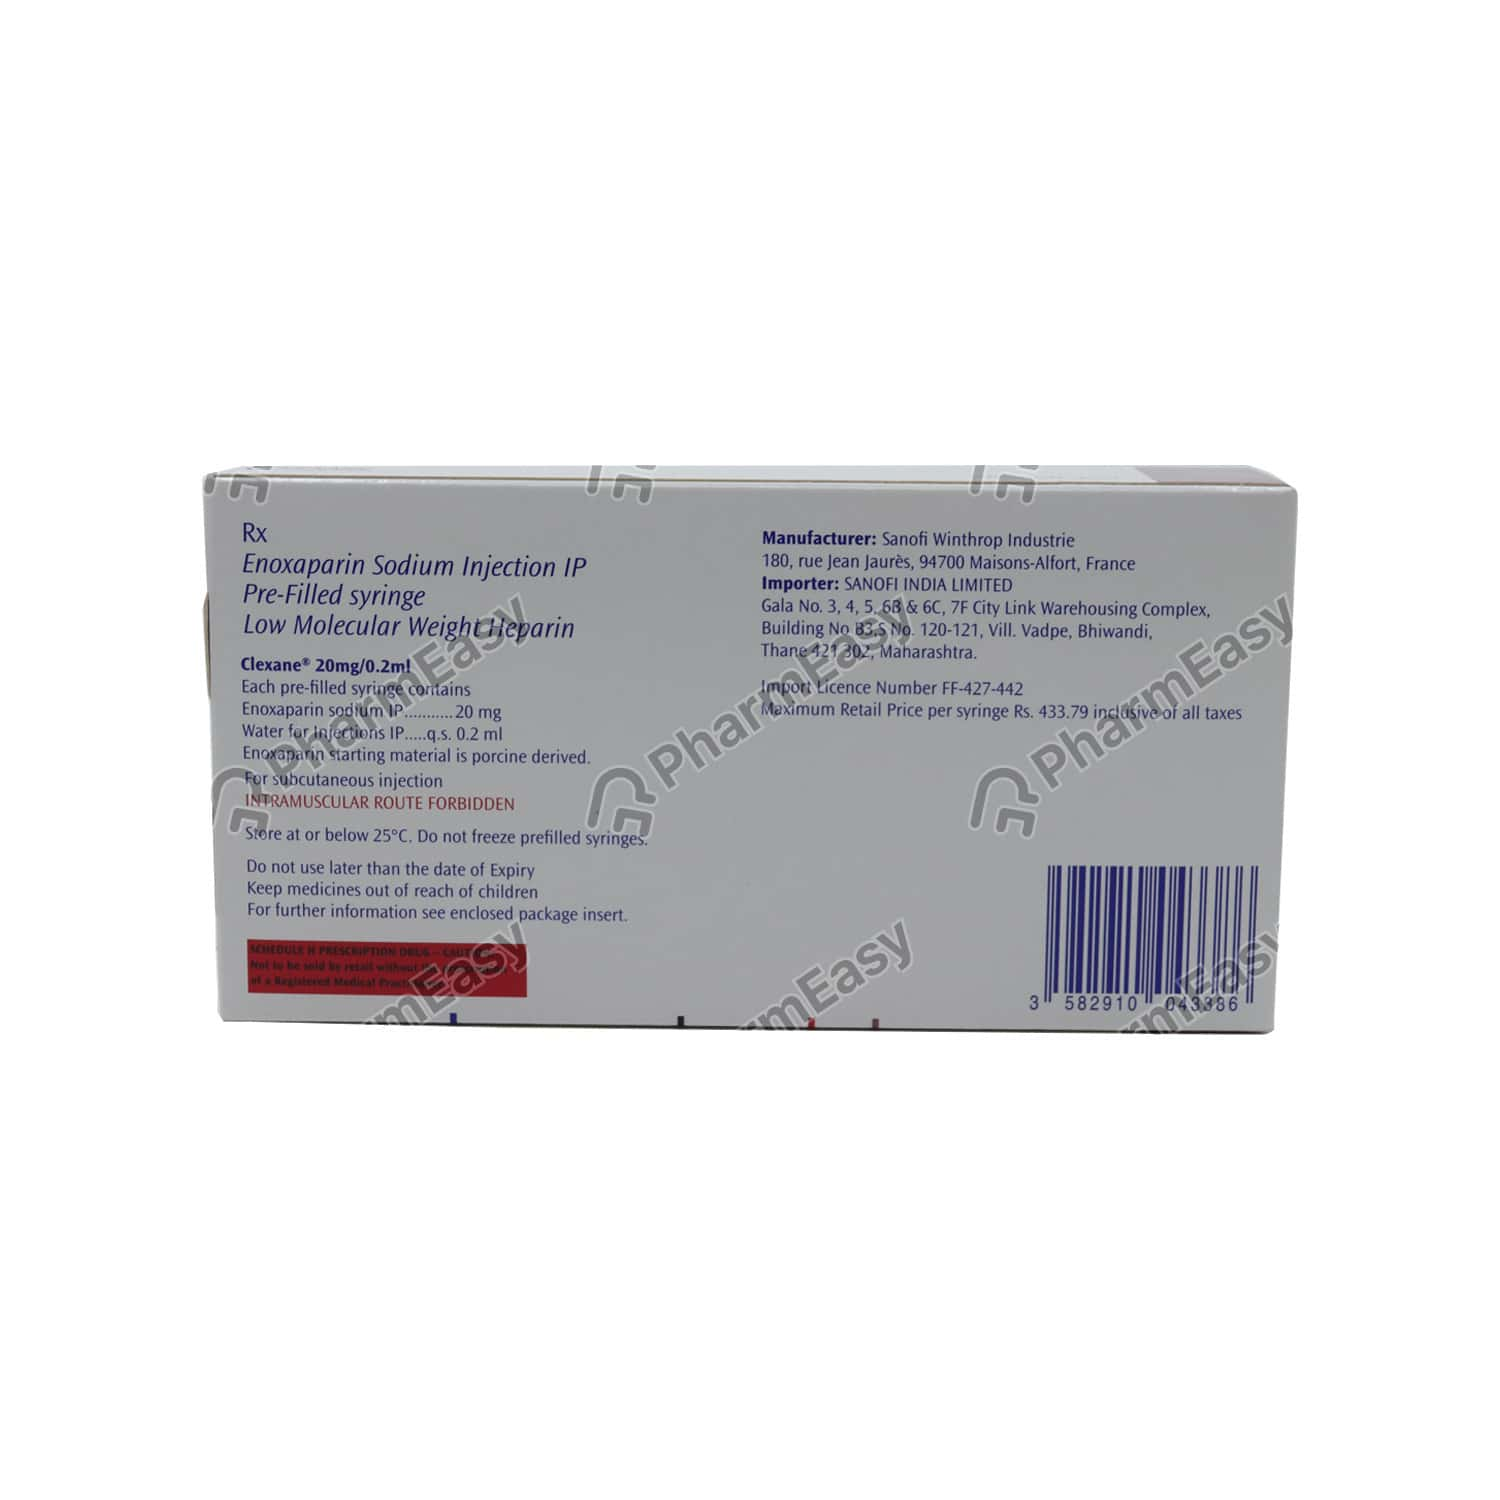 Clexane 20mg Injection Psf 0.2ml